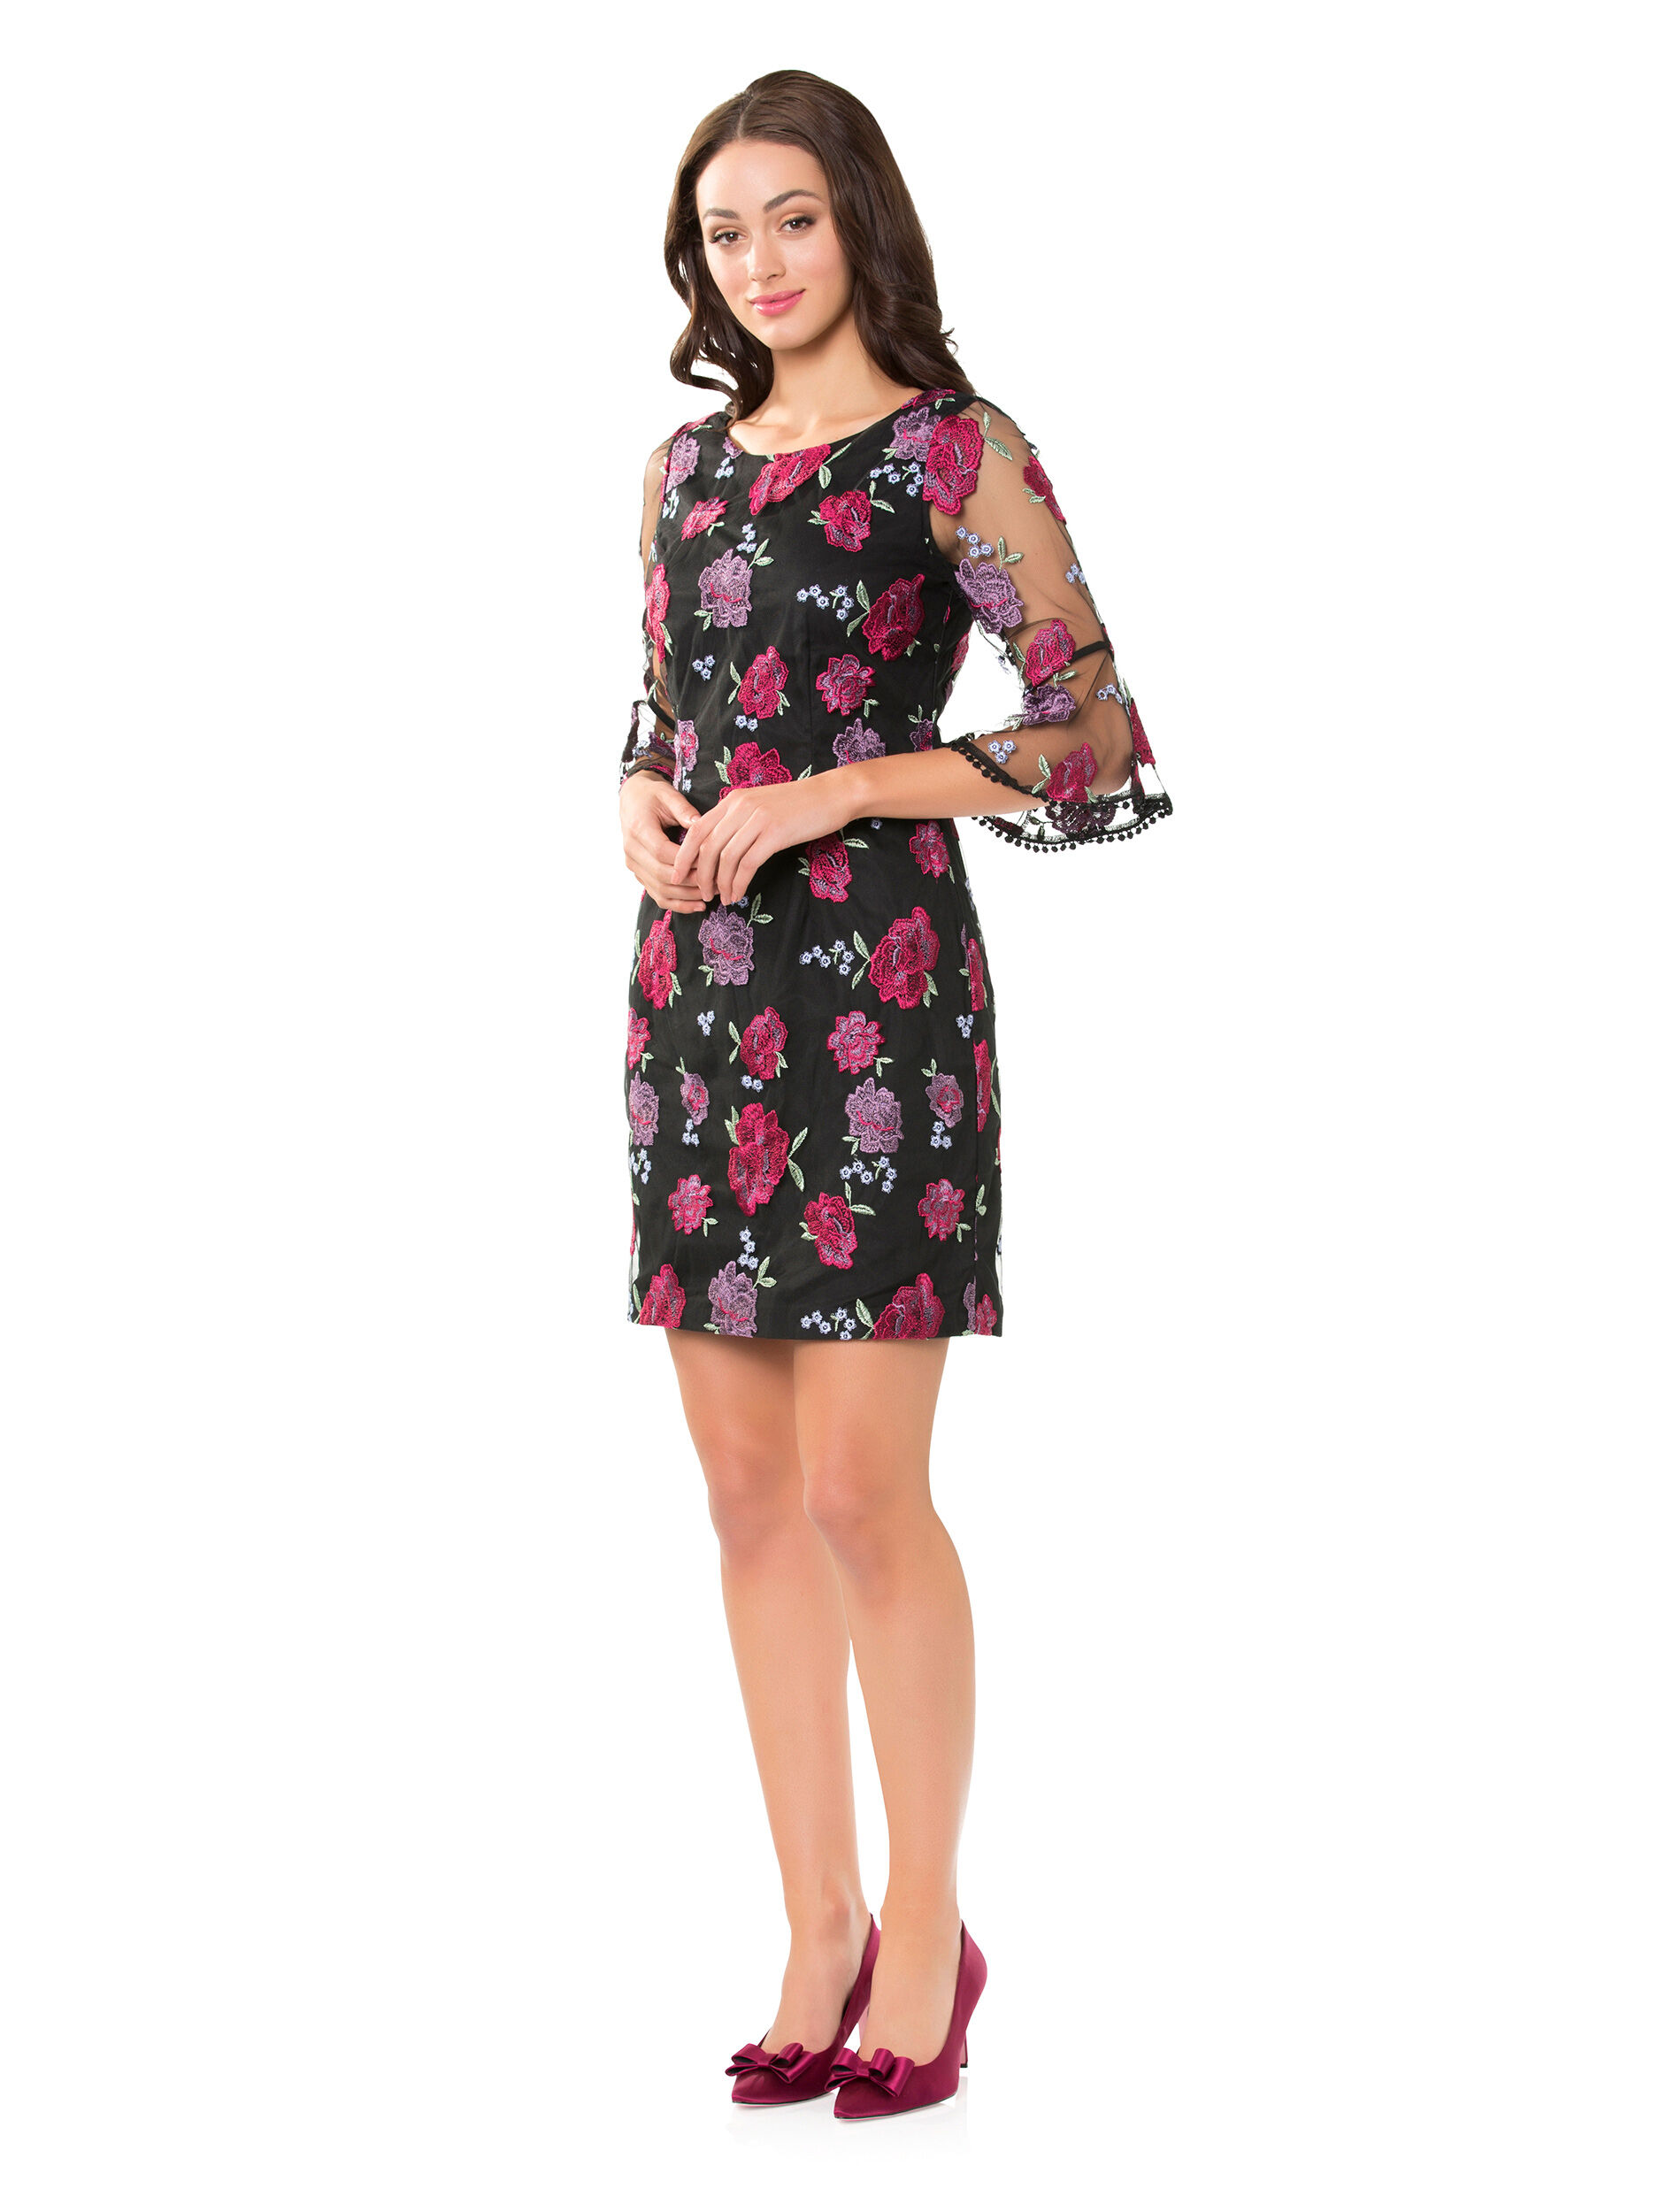 Azzurra Floral Dress